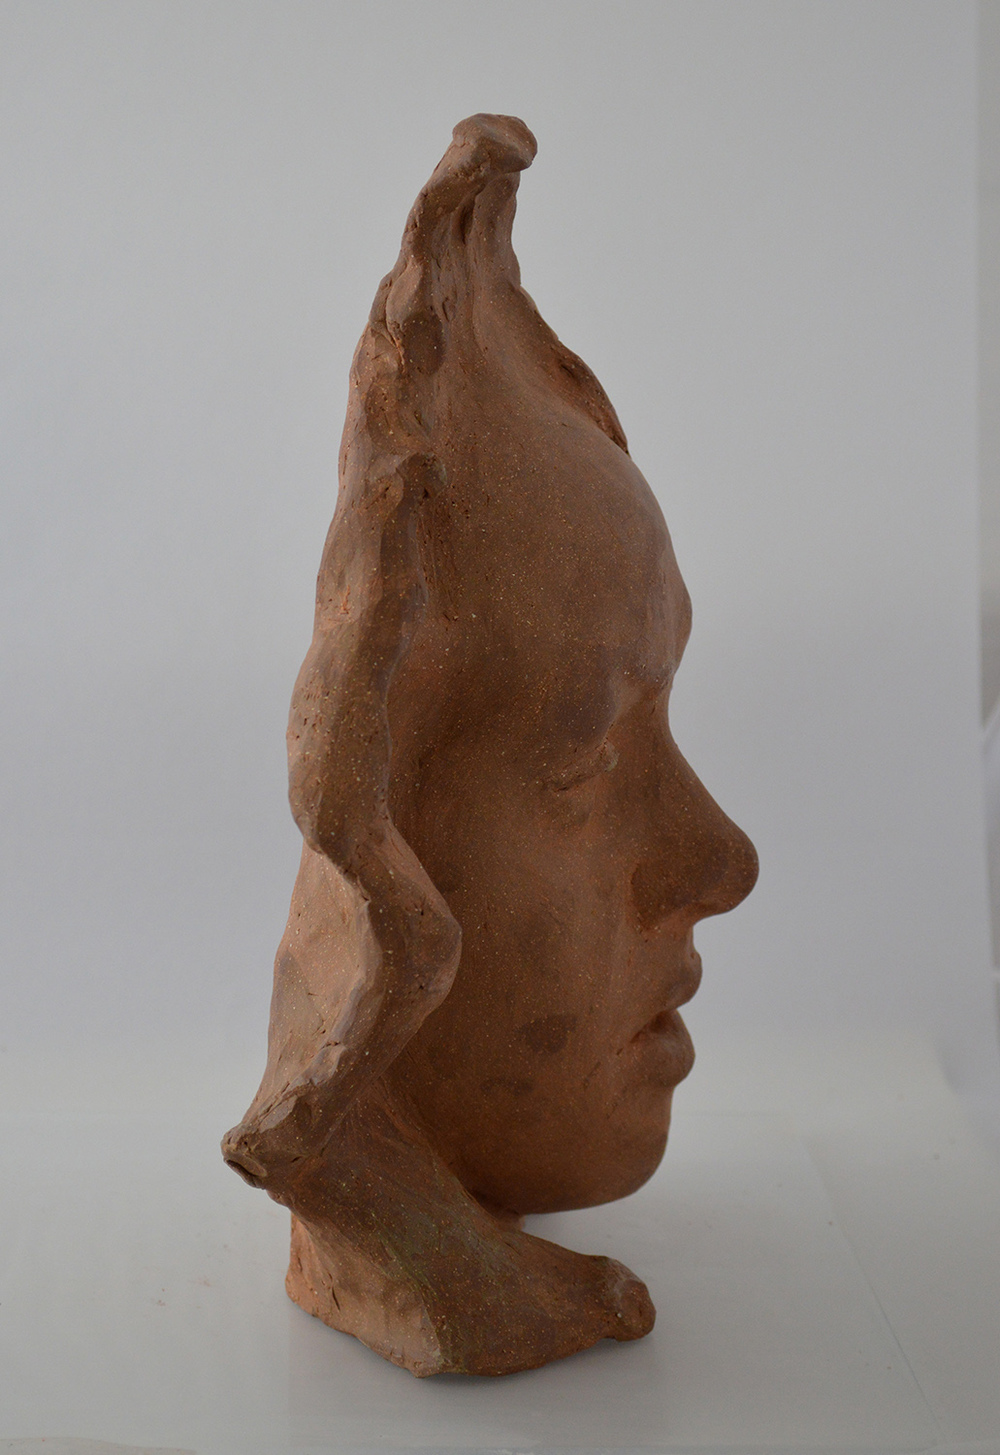 High-fire Clay / 11 in x 9 in / Collection of the Artist's Wife